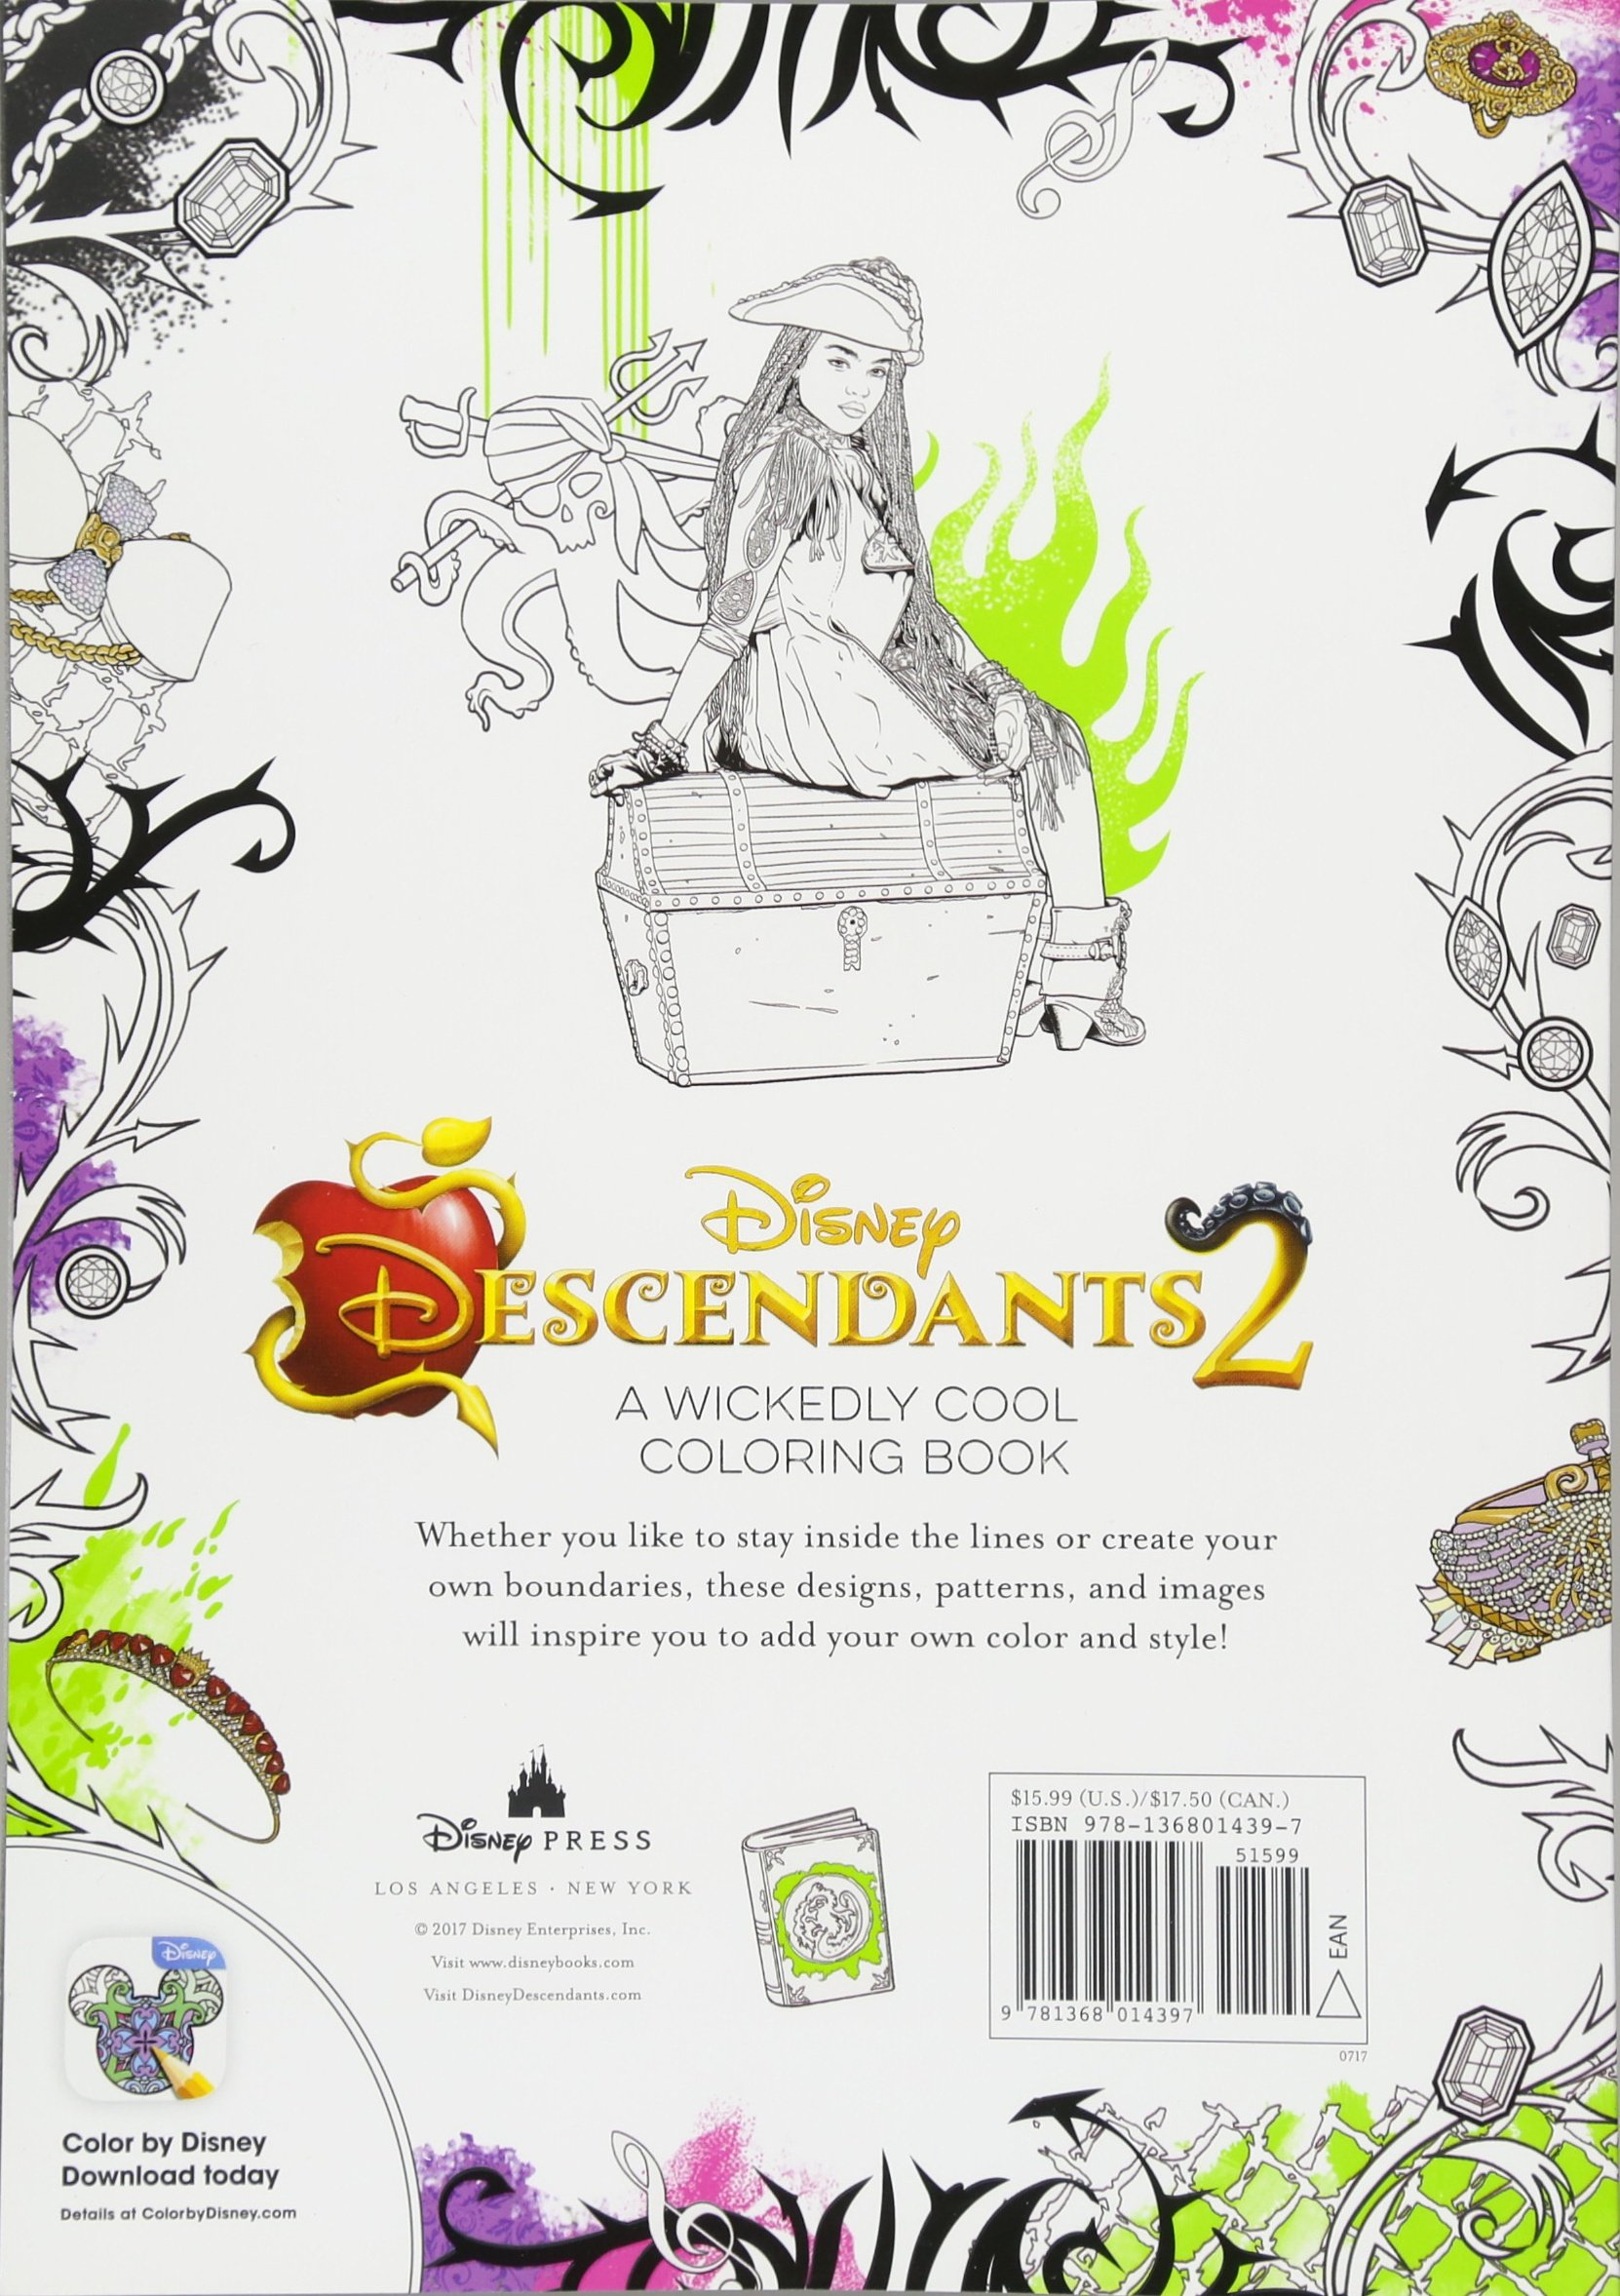 Descendants 2 A Wickedly Cool Coloring Book Art Of Coloring Amazon